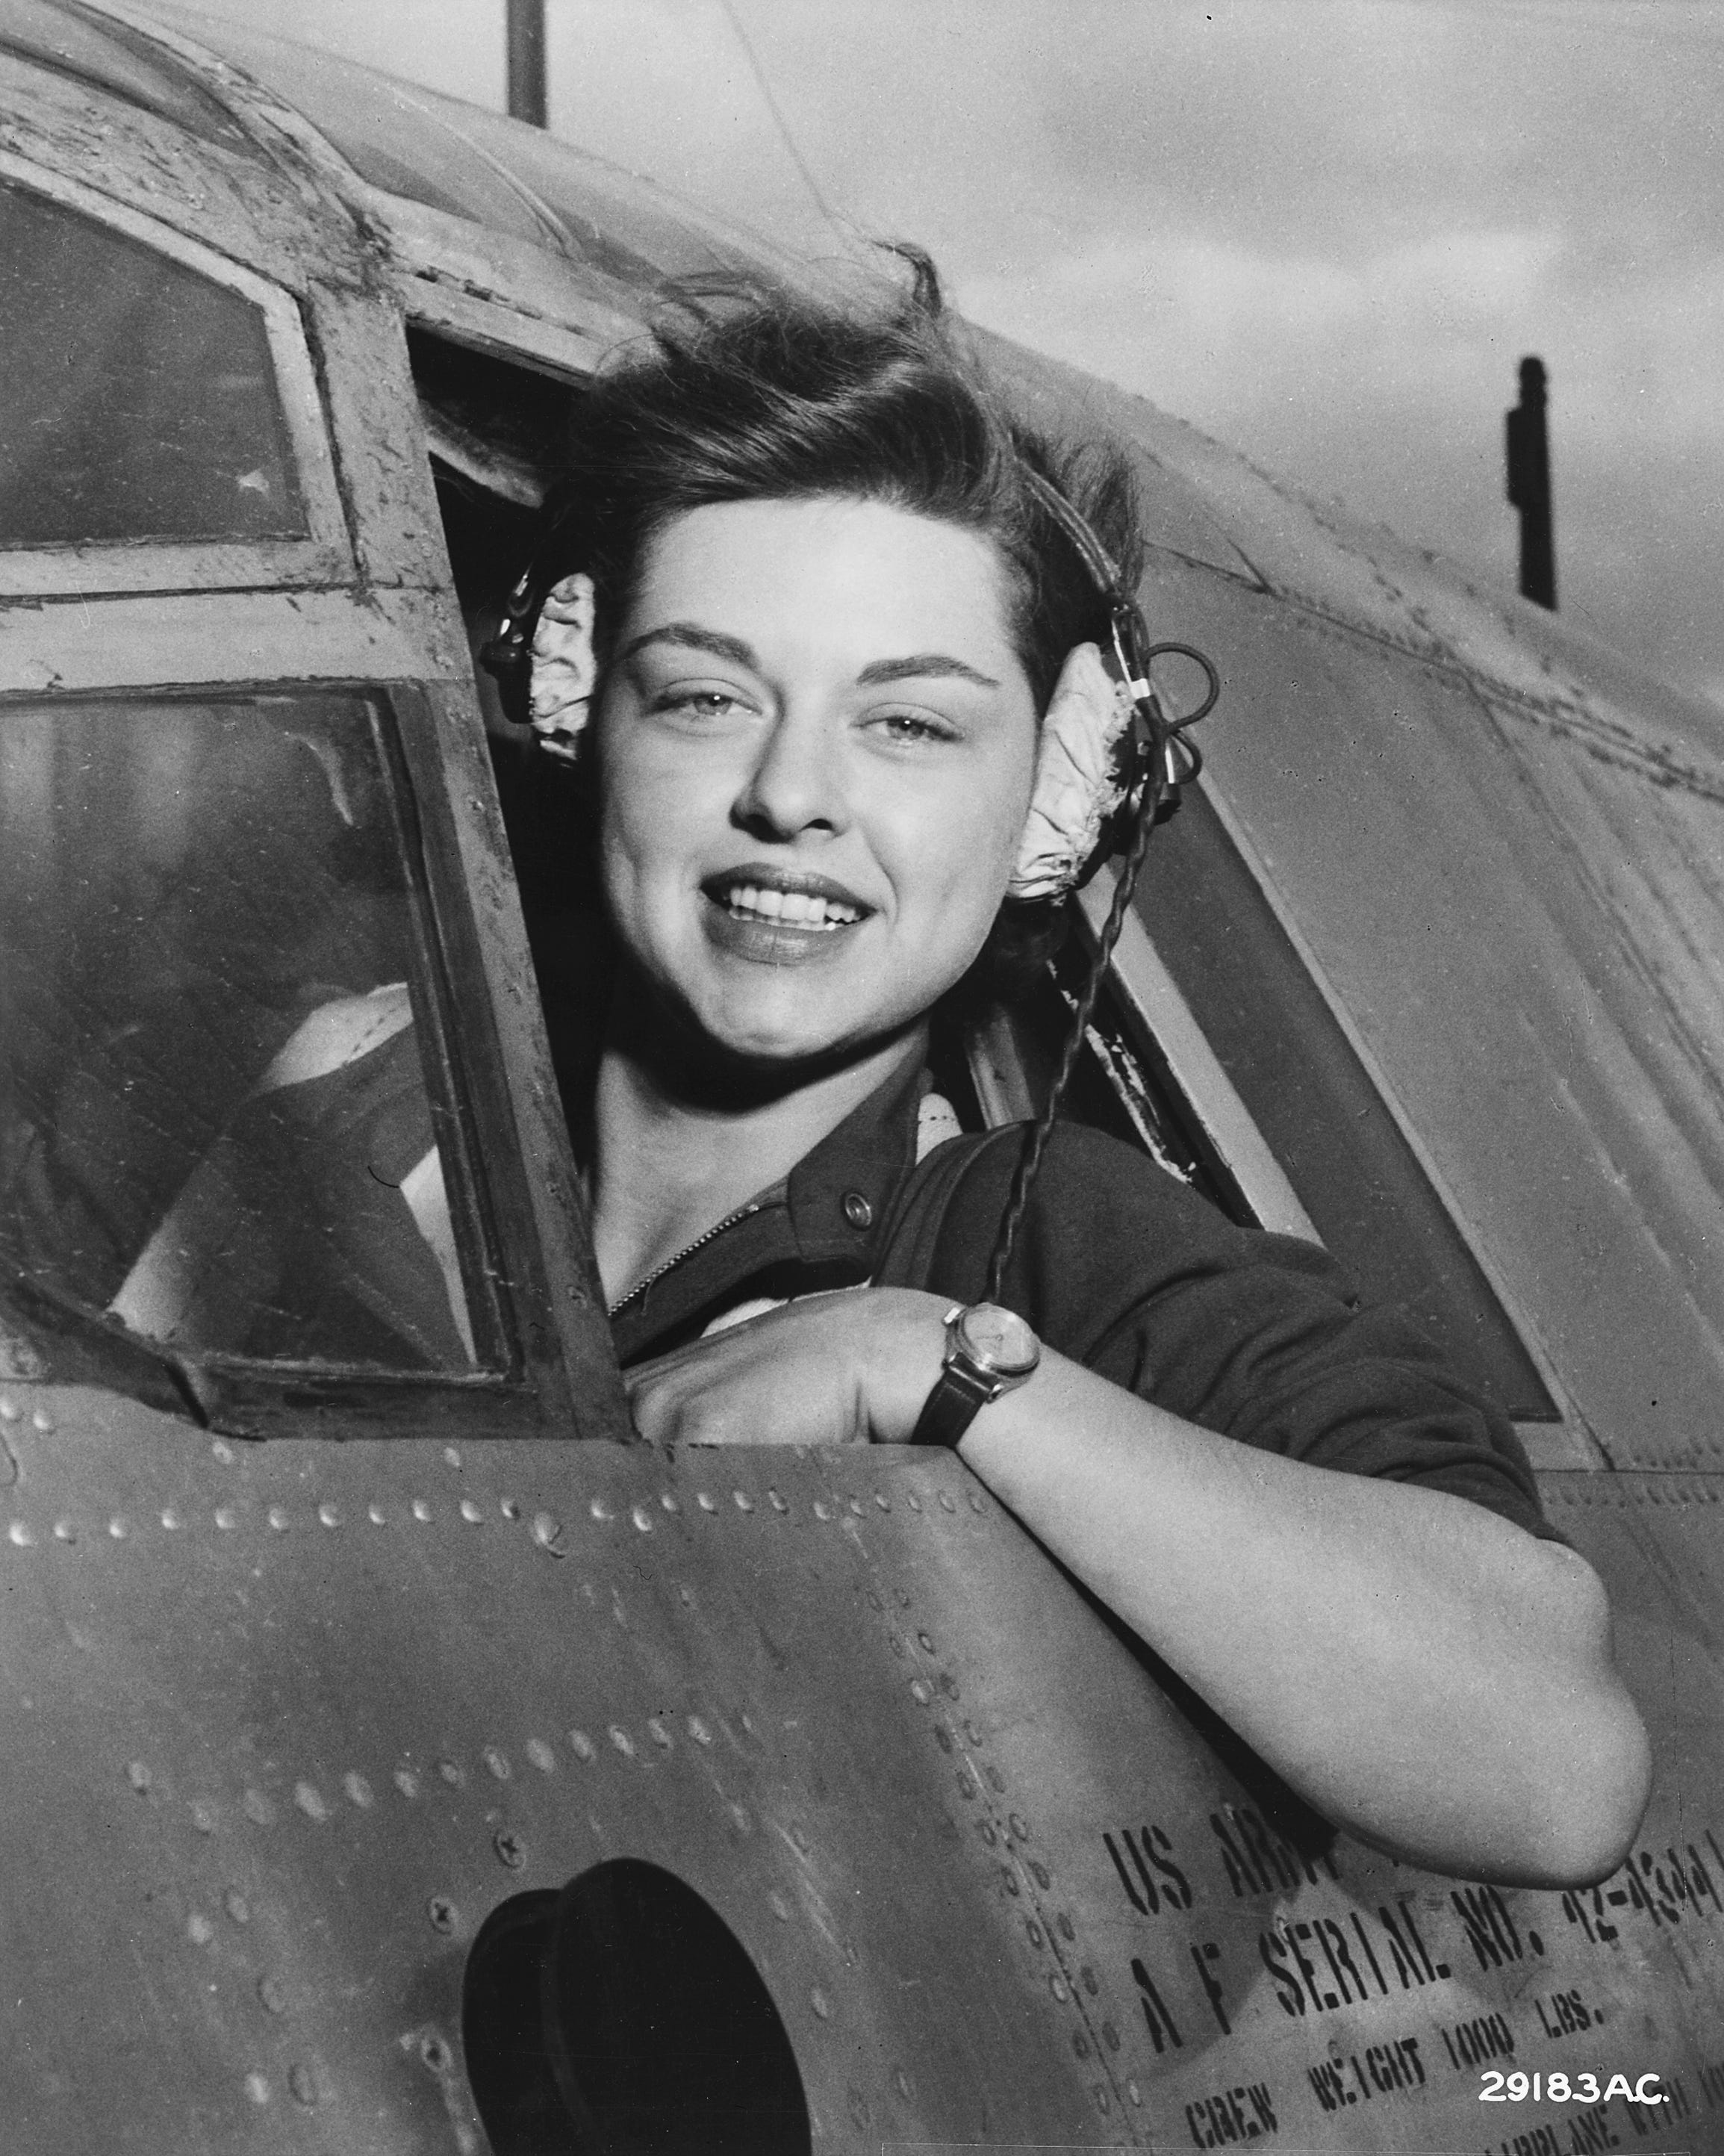 Elizabeth L. Gardner, a member of the Women's Airforce Service Pilots, sits at the controls of a B-26 Marauder at Harlingen Army Air Field, Texas, between 1943-44.